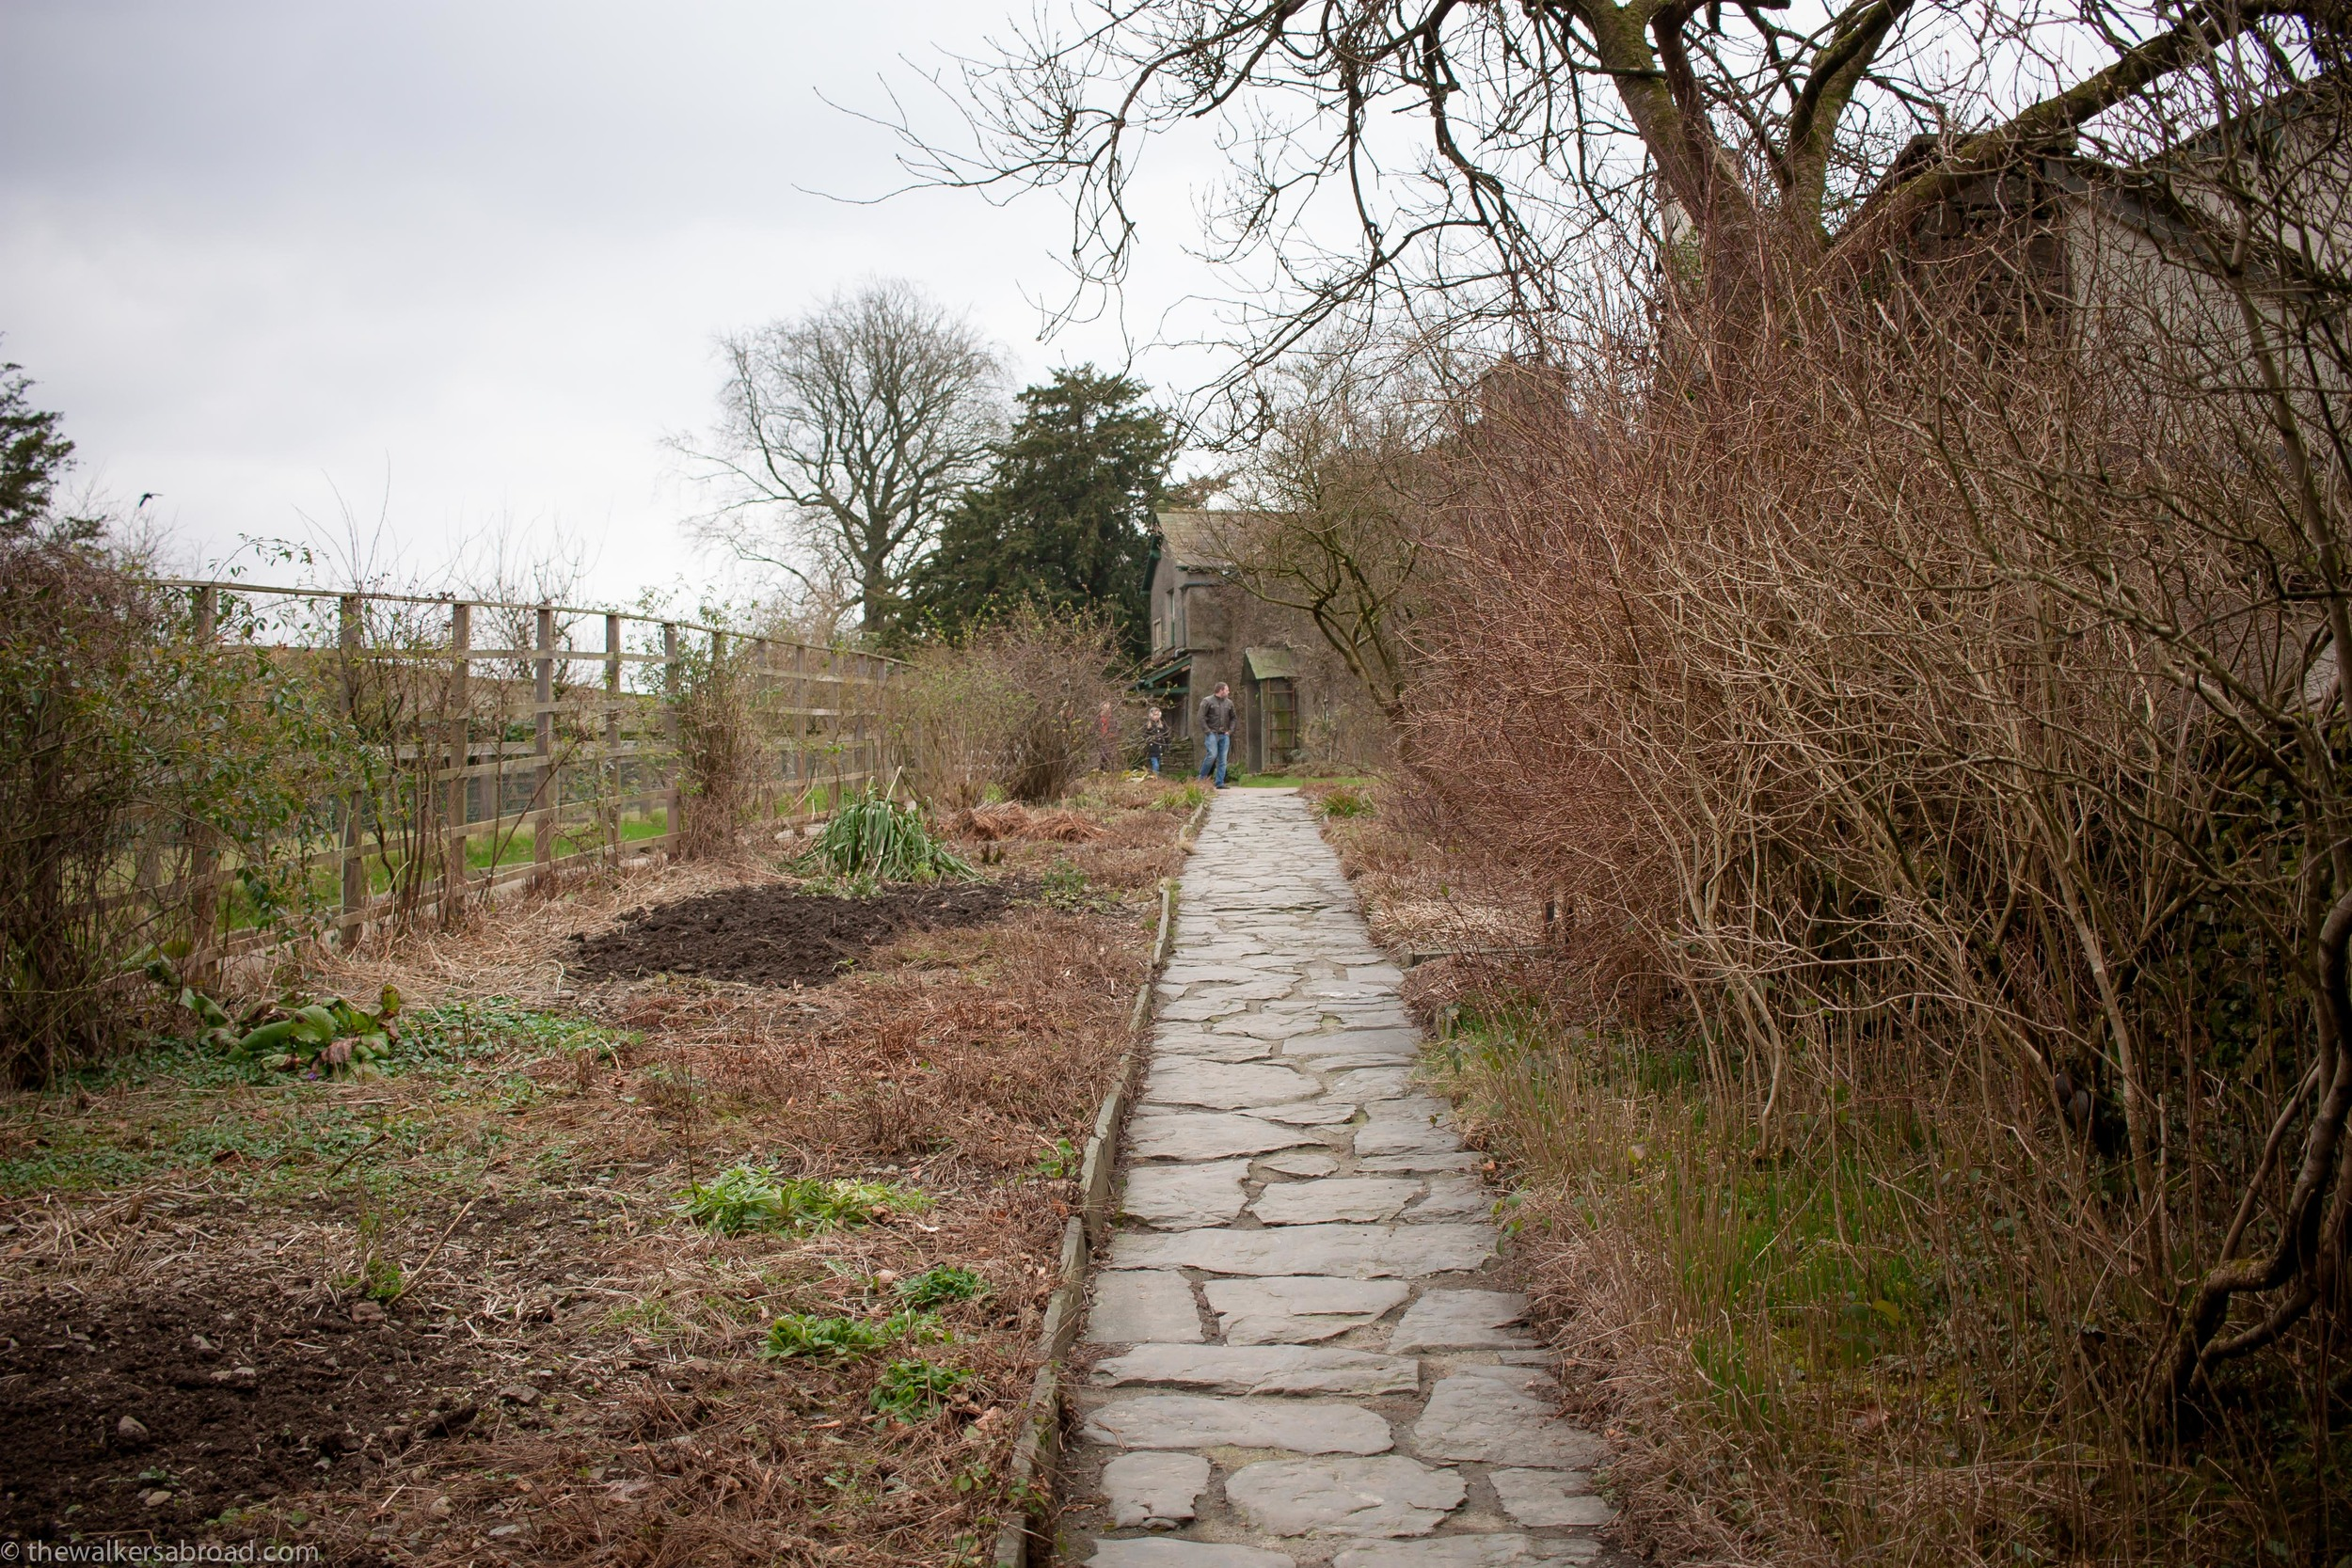 The pathway up to the house. During the spring and summer the gardens are overflowing with colorful flowers.